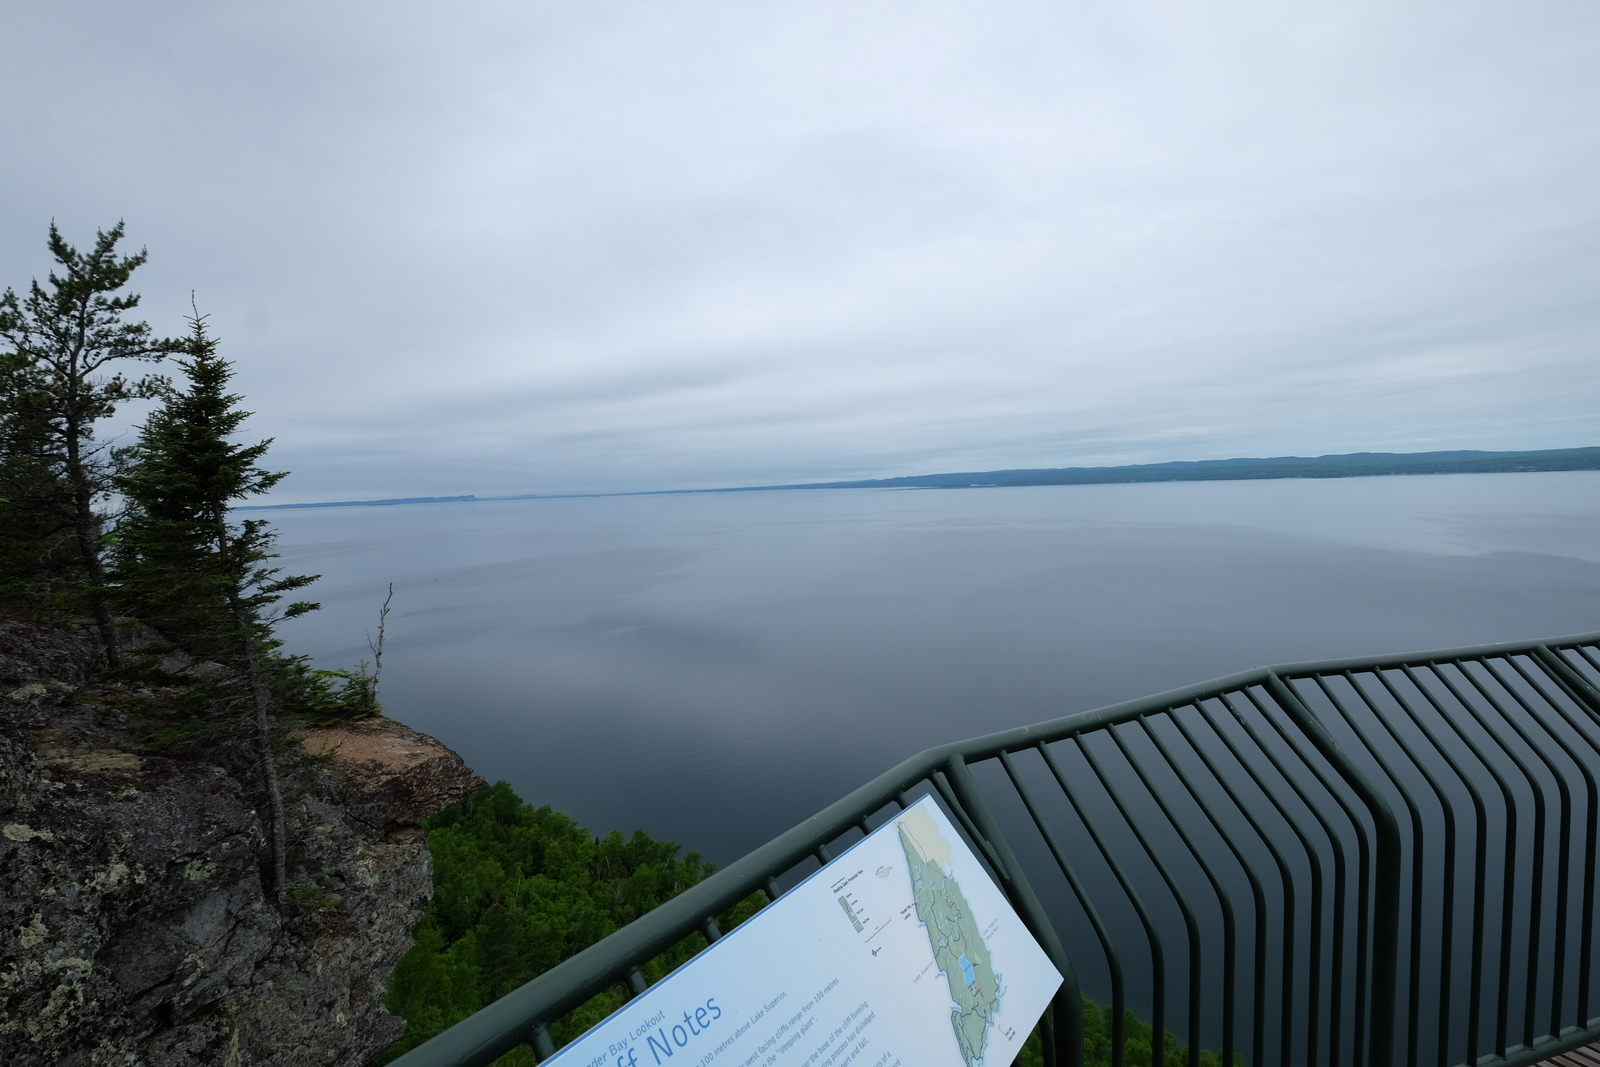 The Thunder Bay lookout at Sleeping Giant Provincial Park. JIM BYERS PHOTO